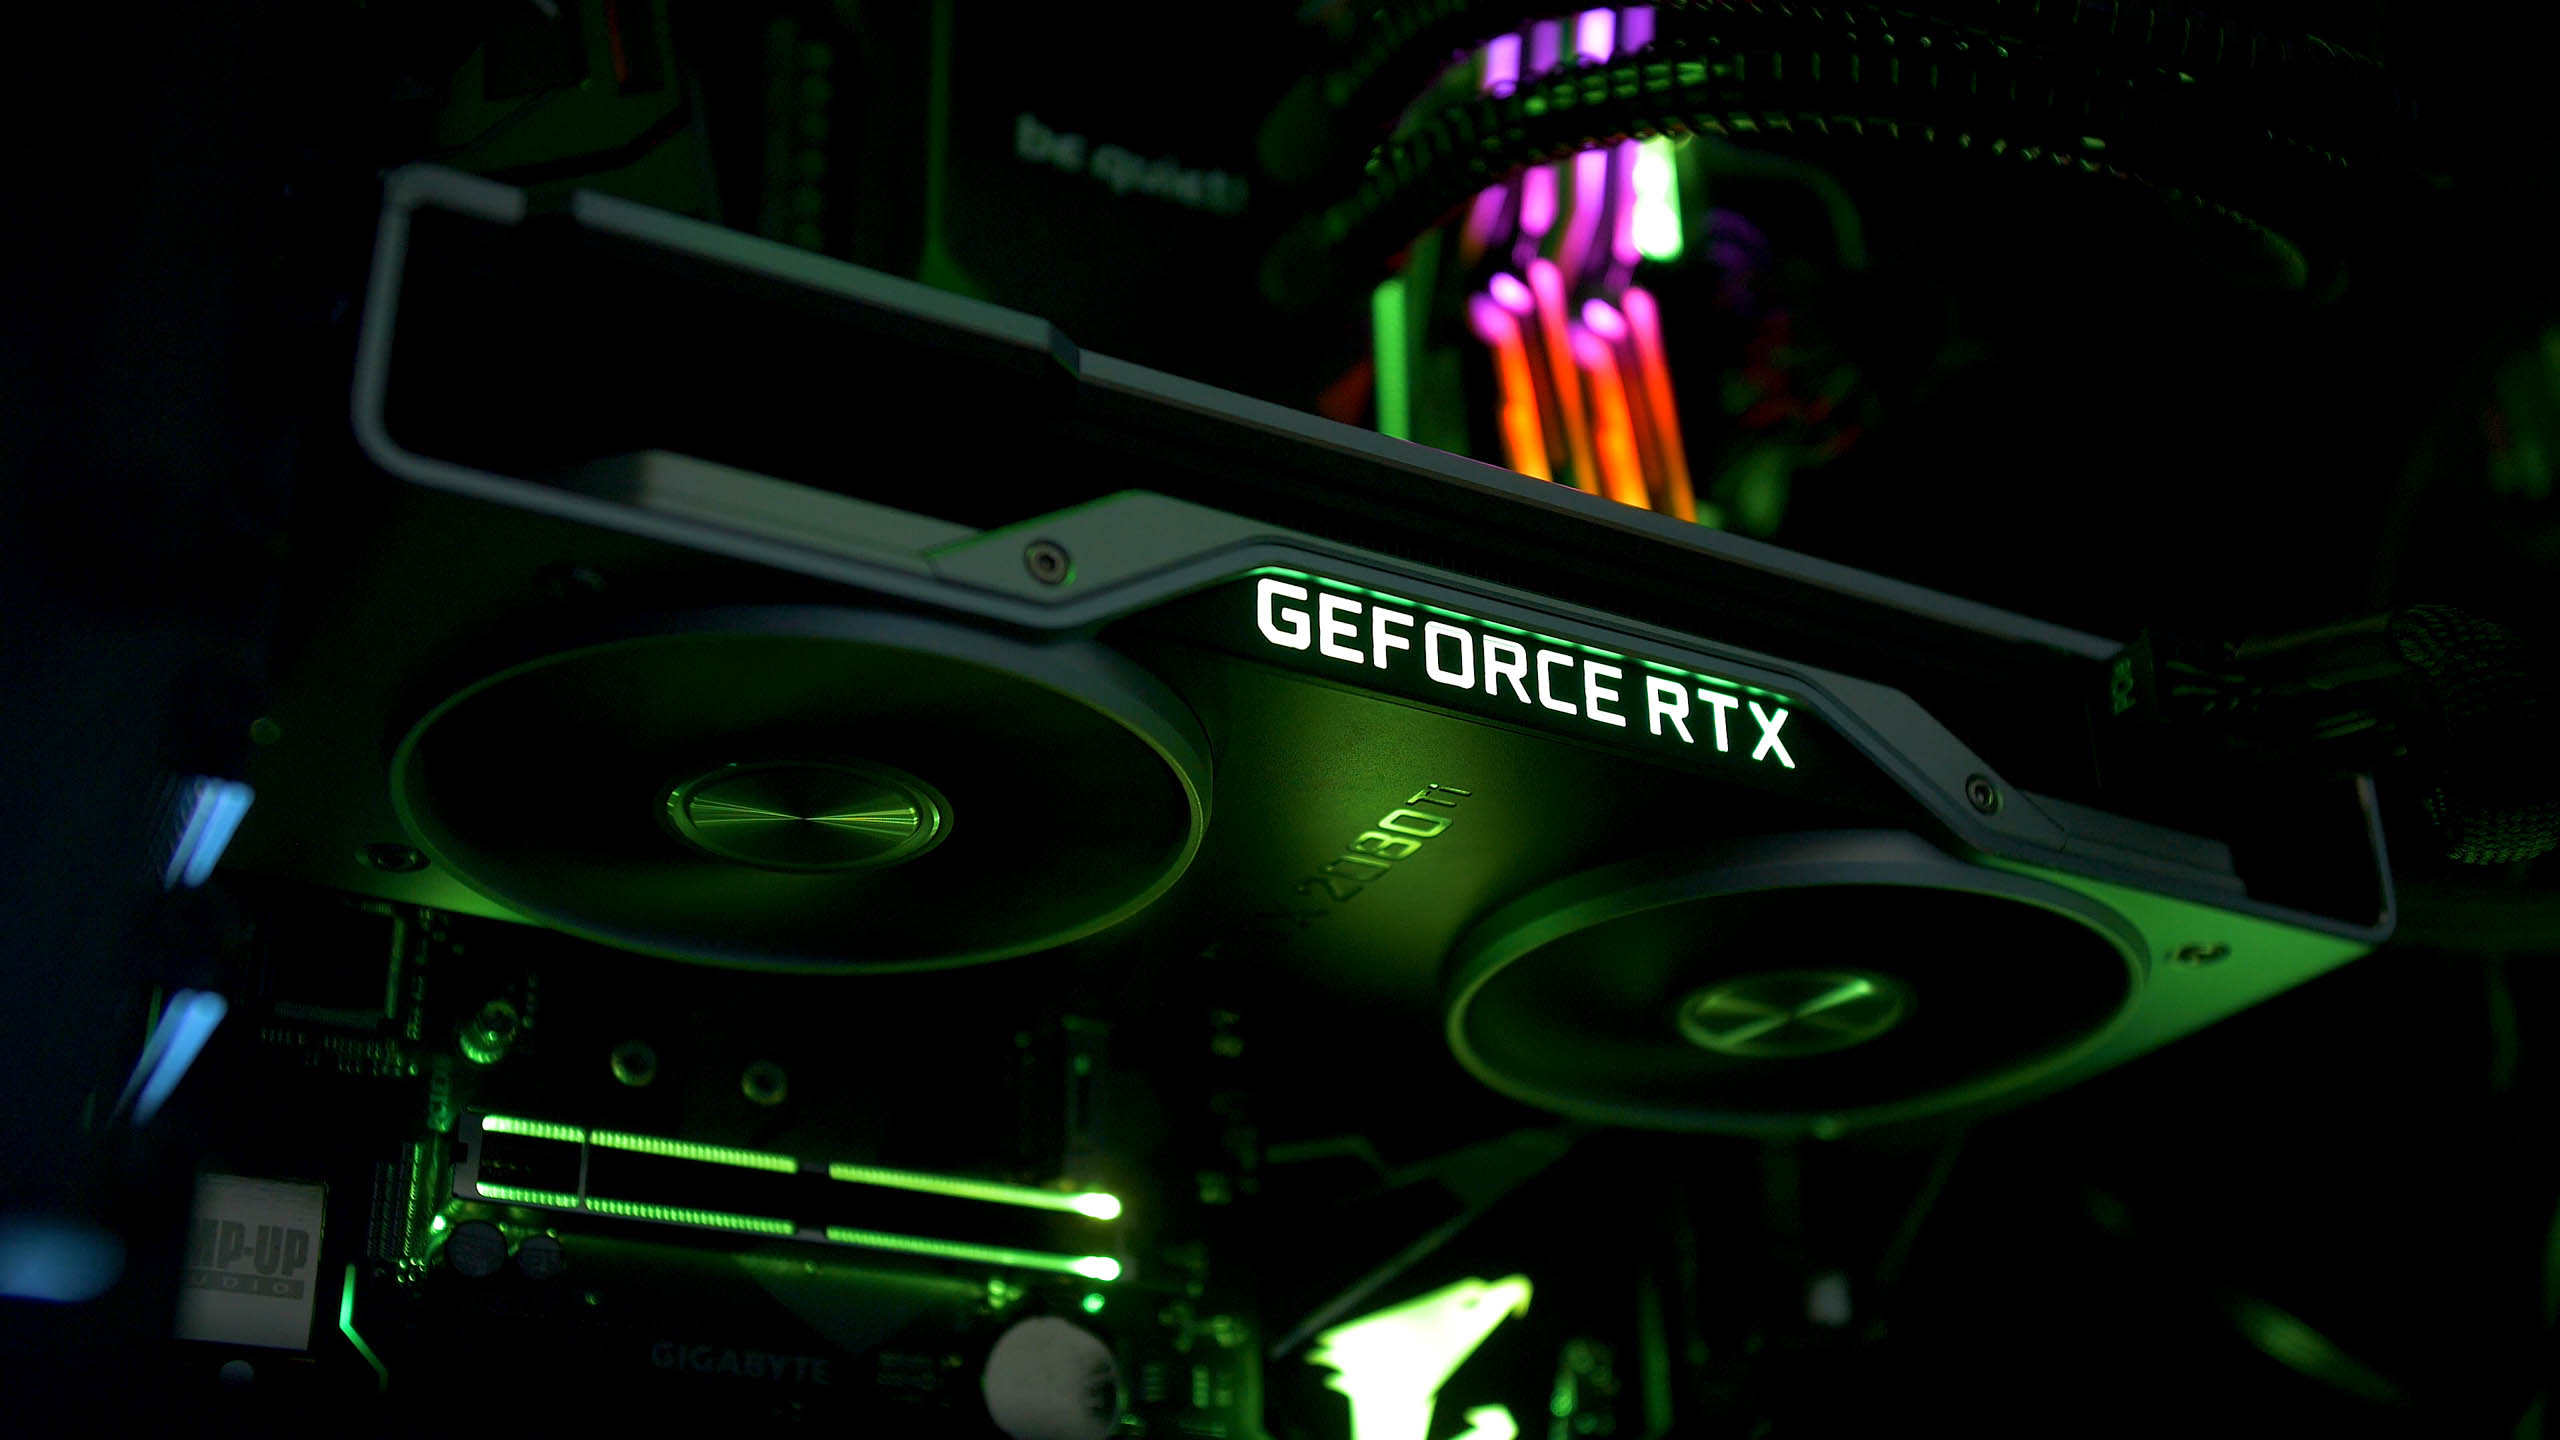 Leaked Nvidia RTX 3090 benchmark score shows performance up to 26% faster than RTX 2080 Ti